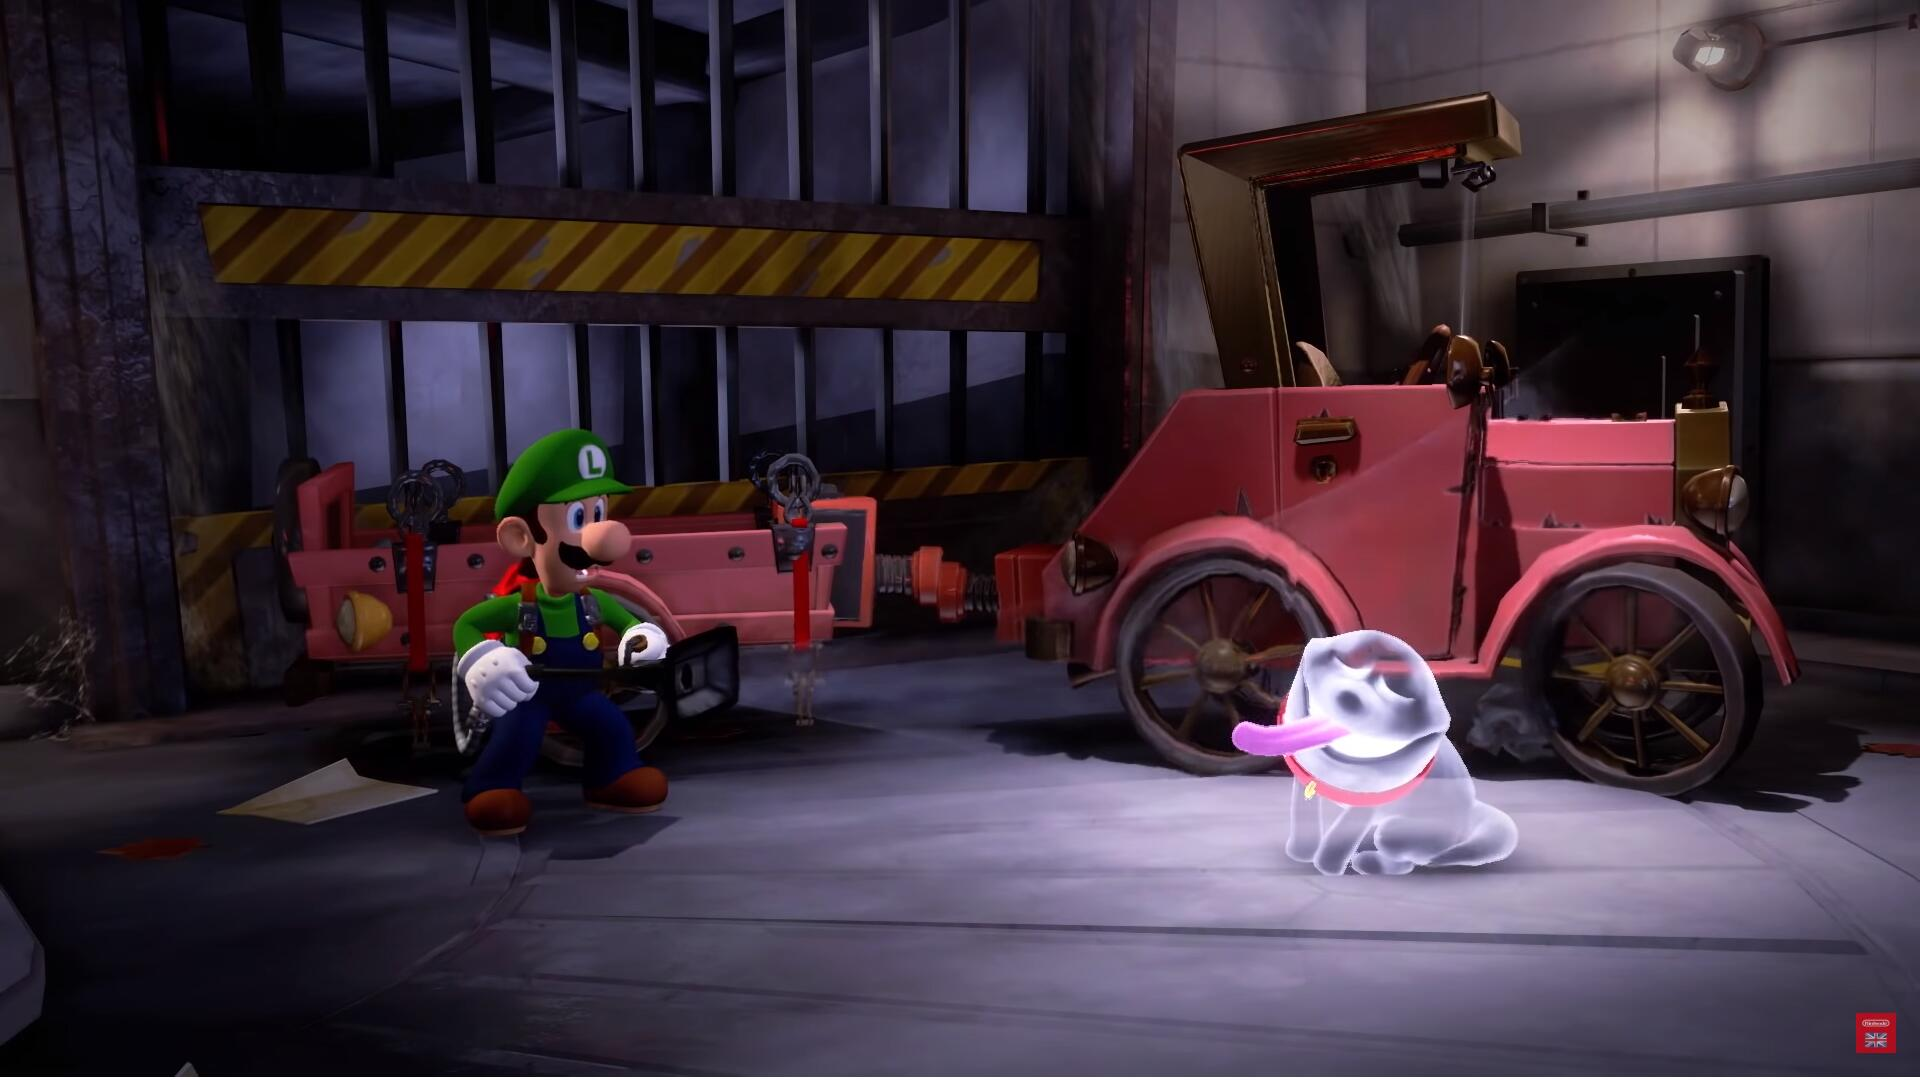 Luigi's Mansion 3 Release Date, New E3 2019 Gameplay, Trailer - Everything We Know